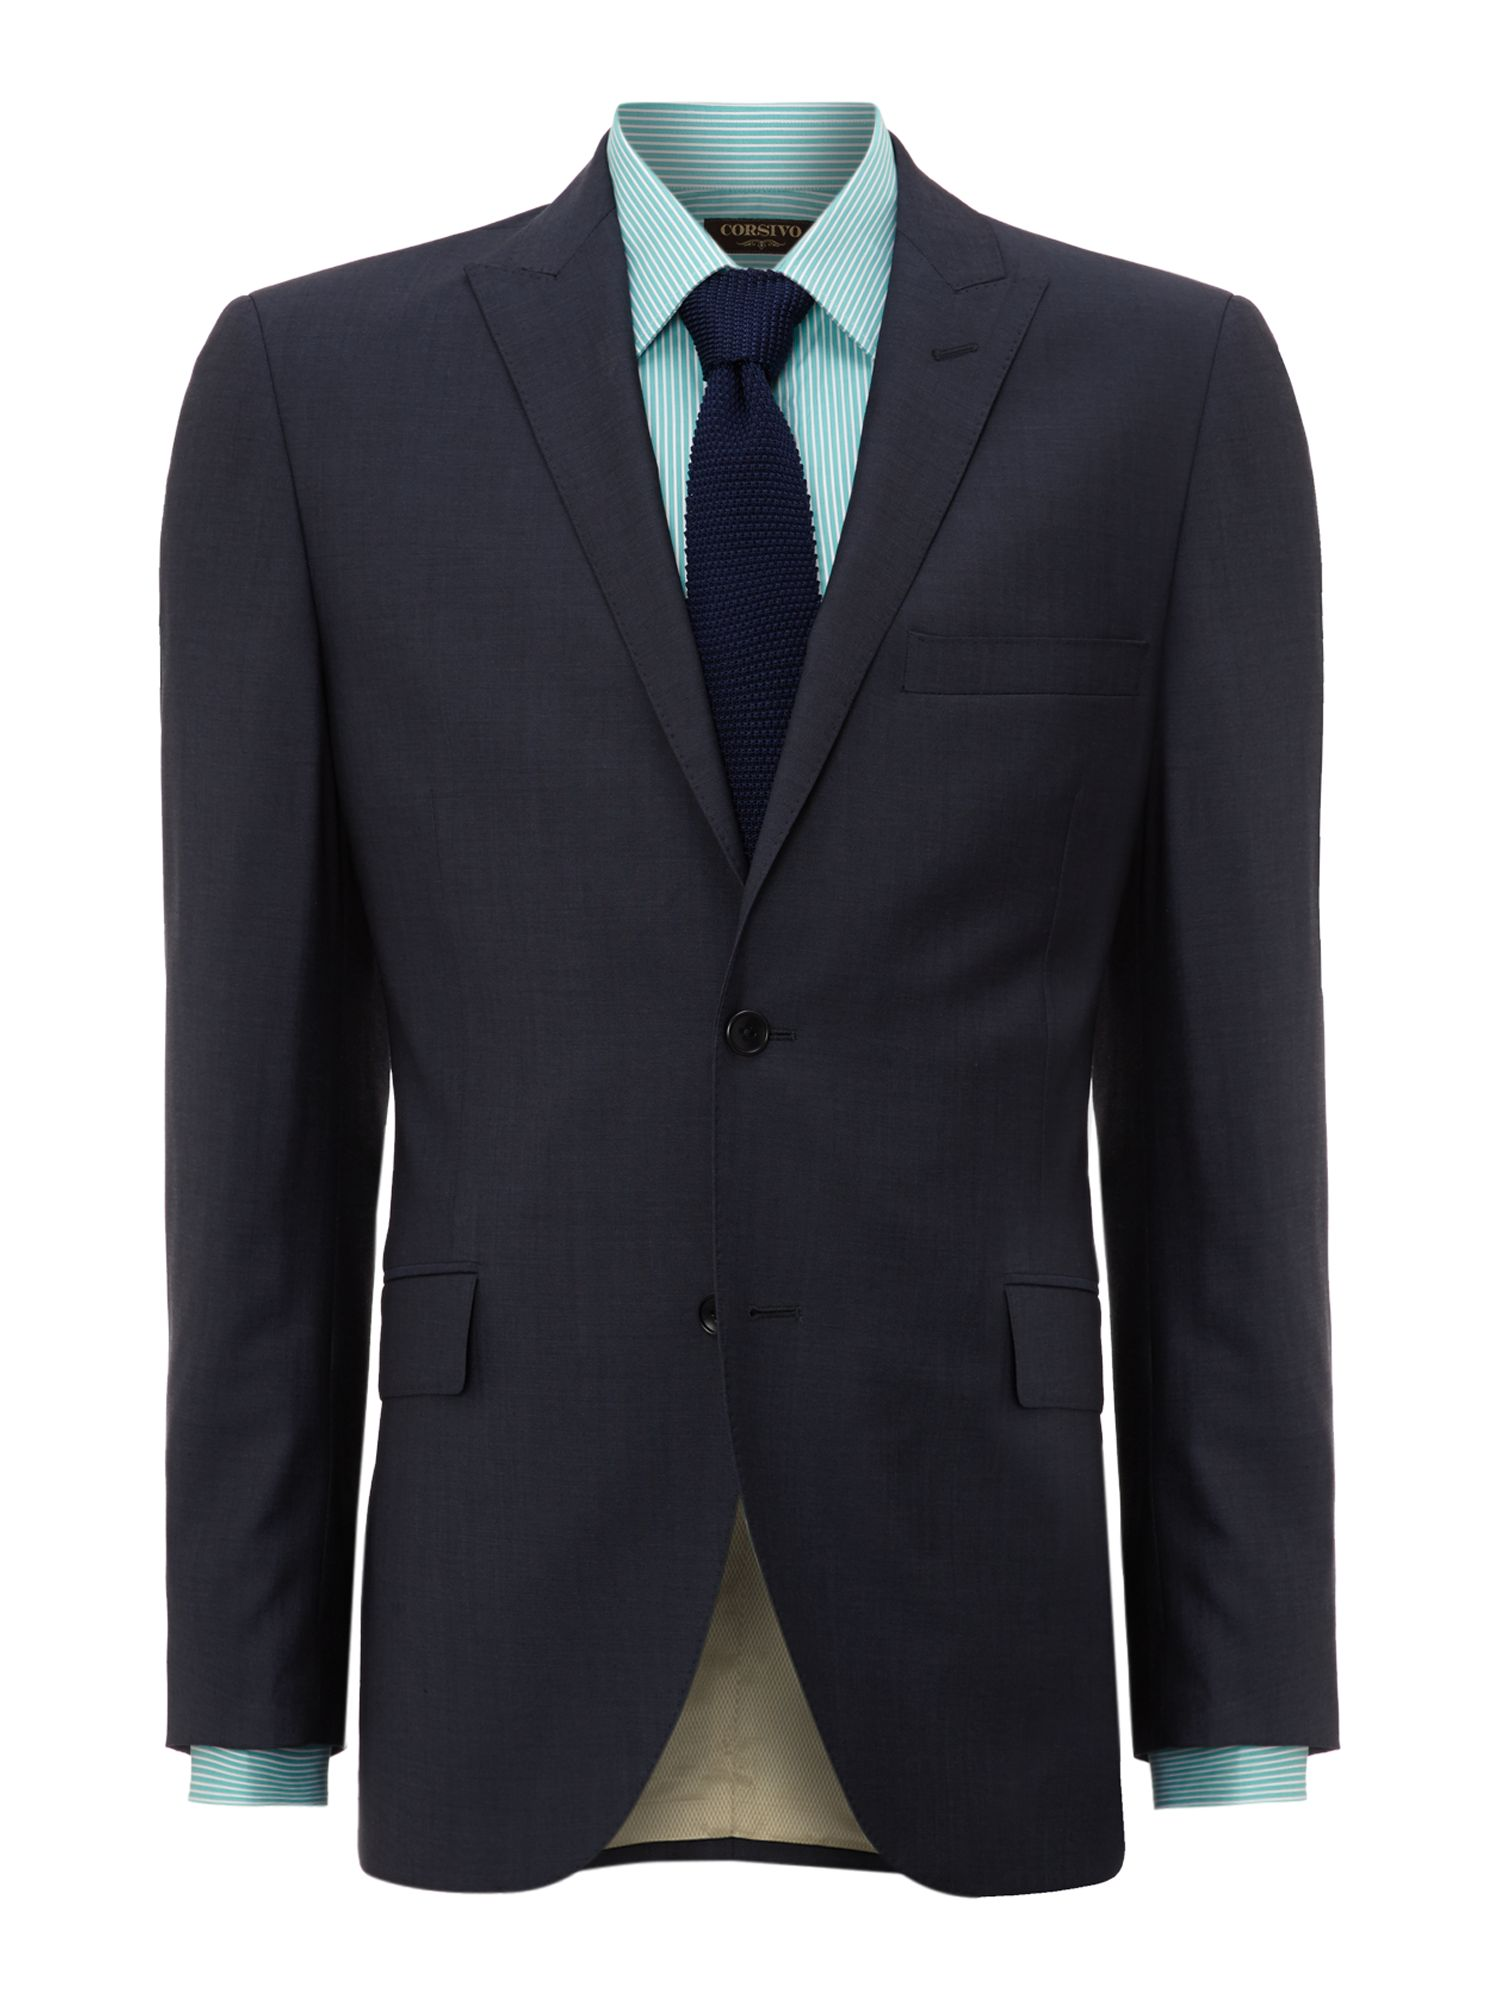 Chisone end on end suit jacket